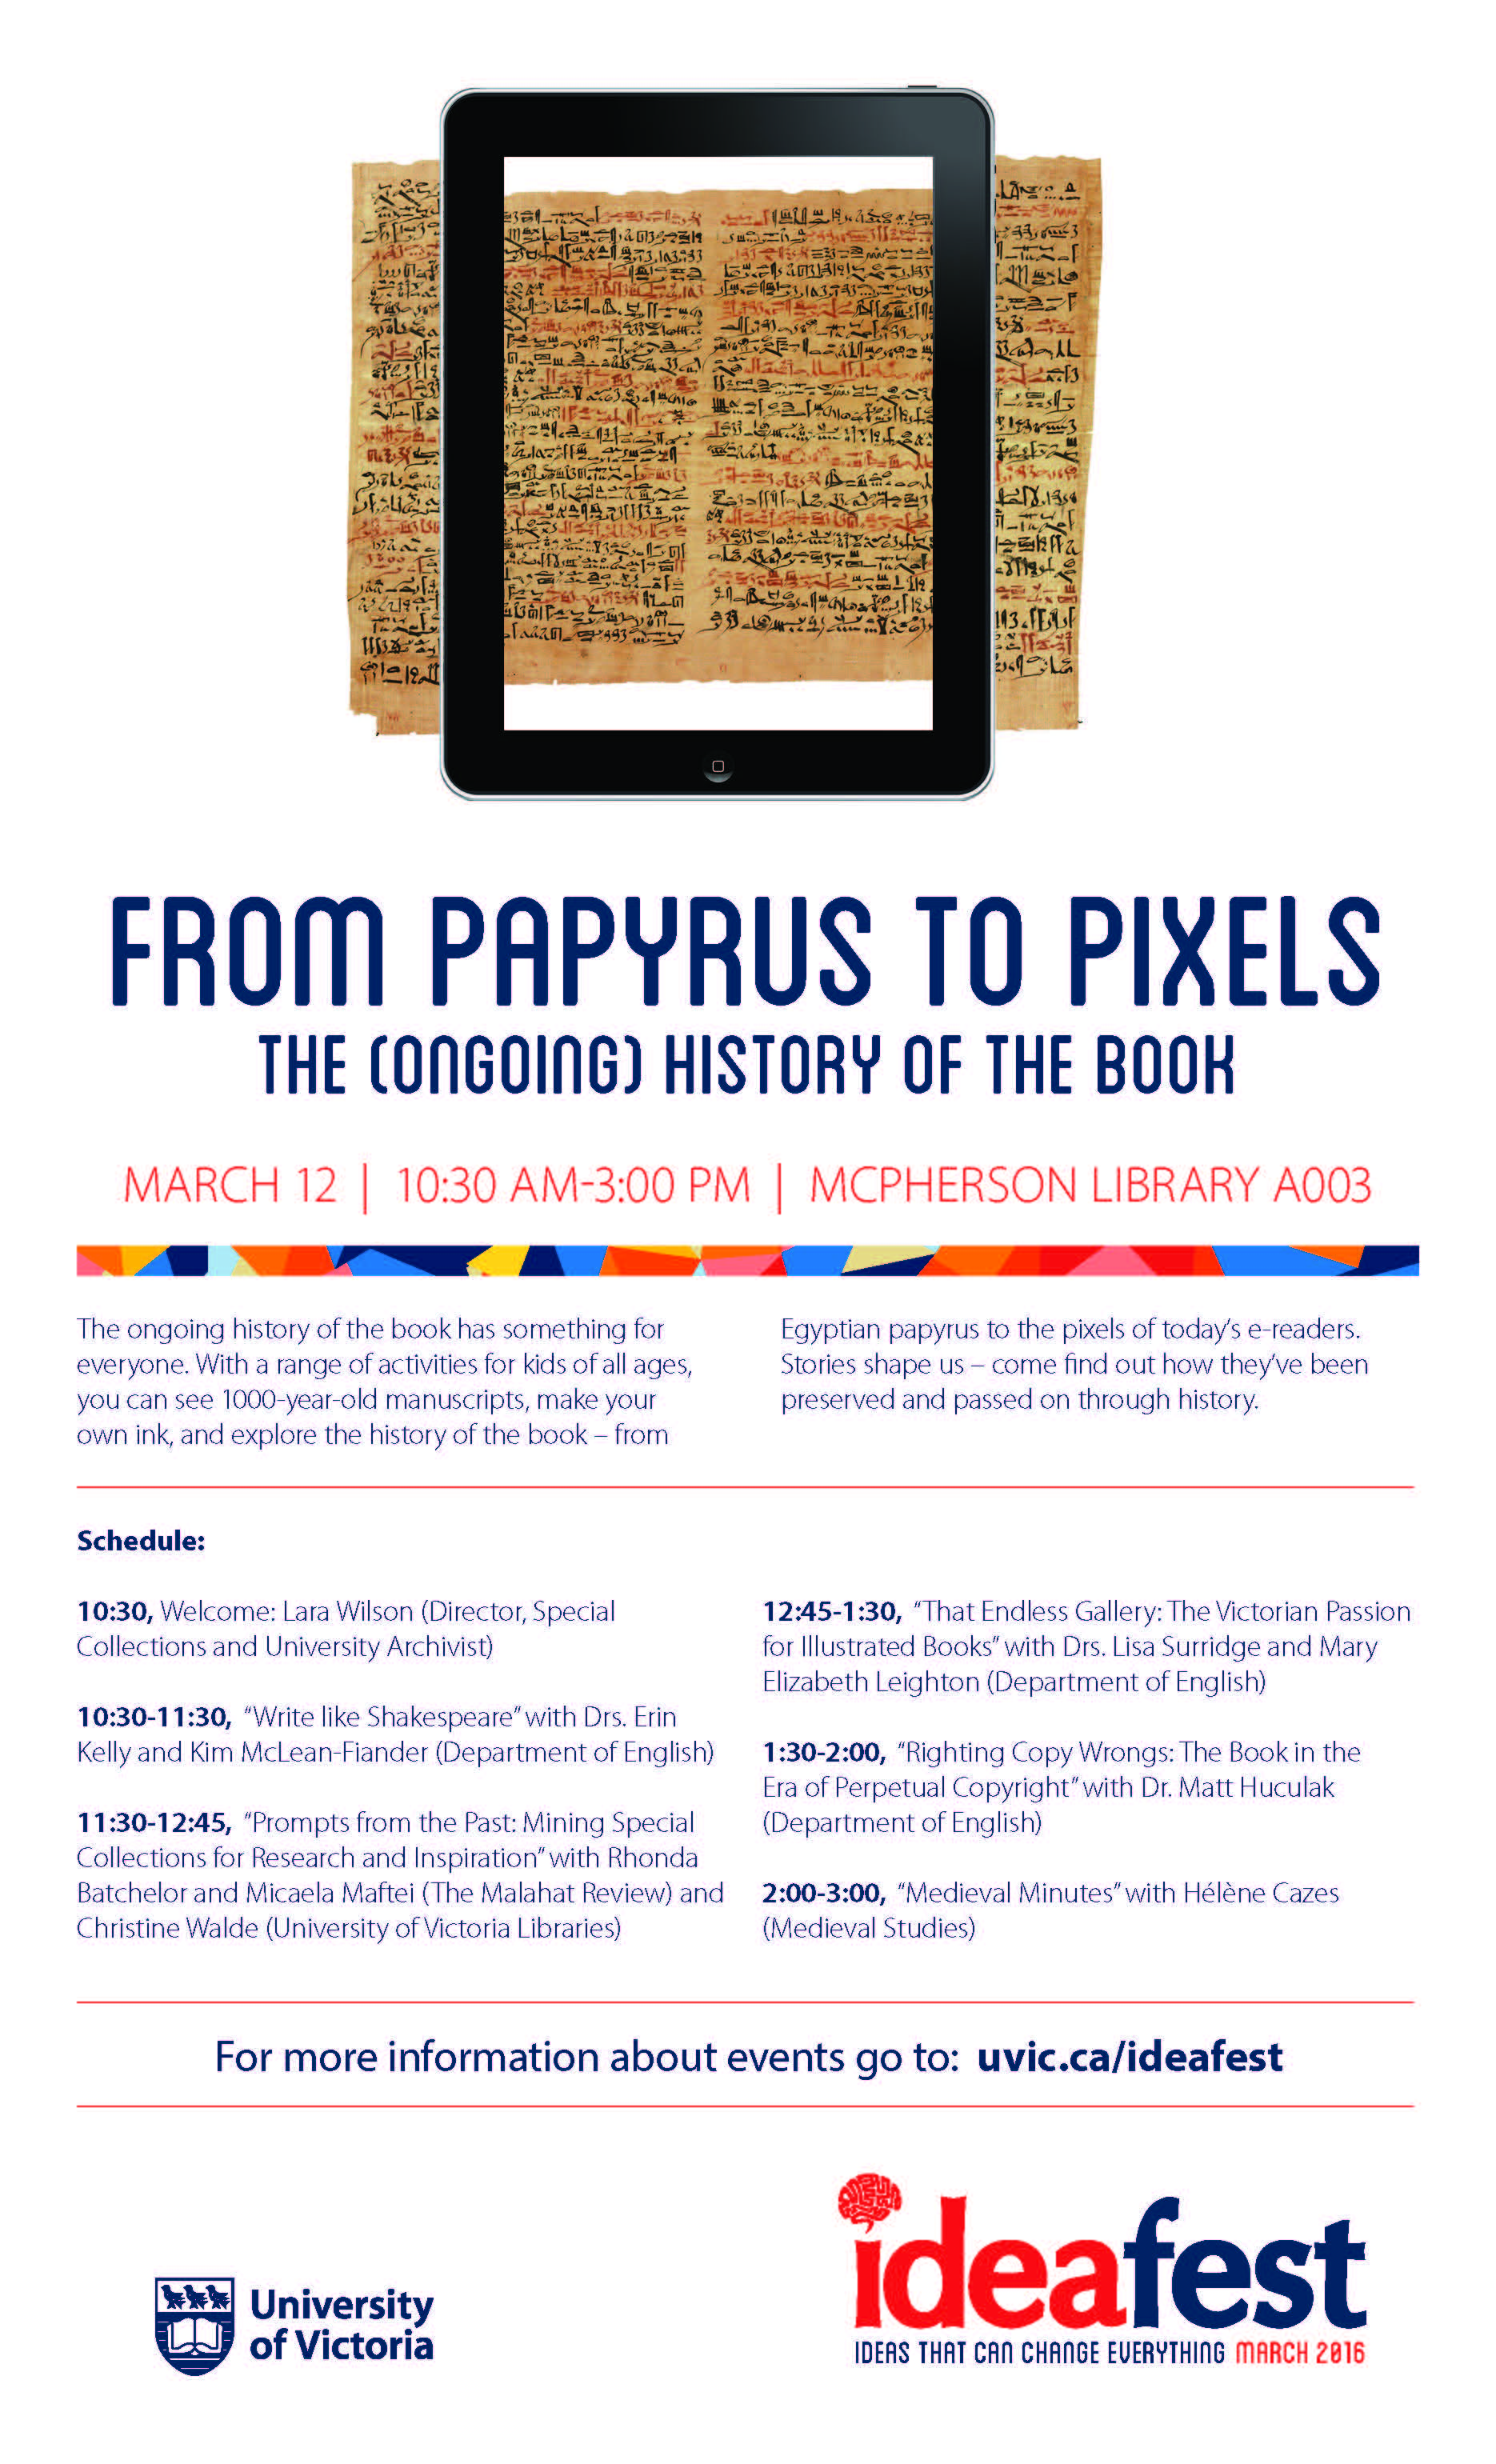 March 12_ENGL_Papyrus to pixels_VERSION 3 0